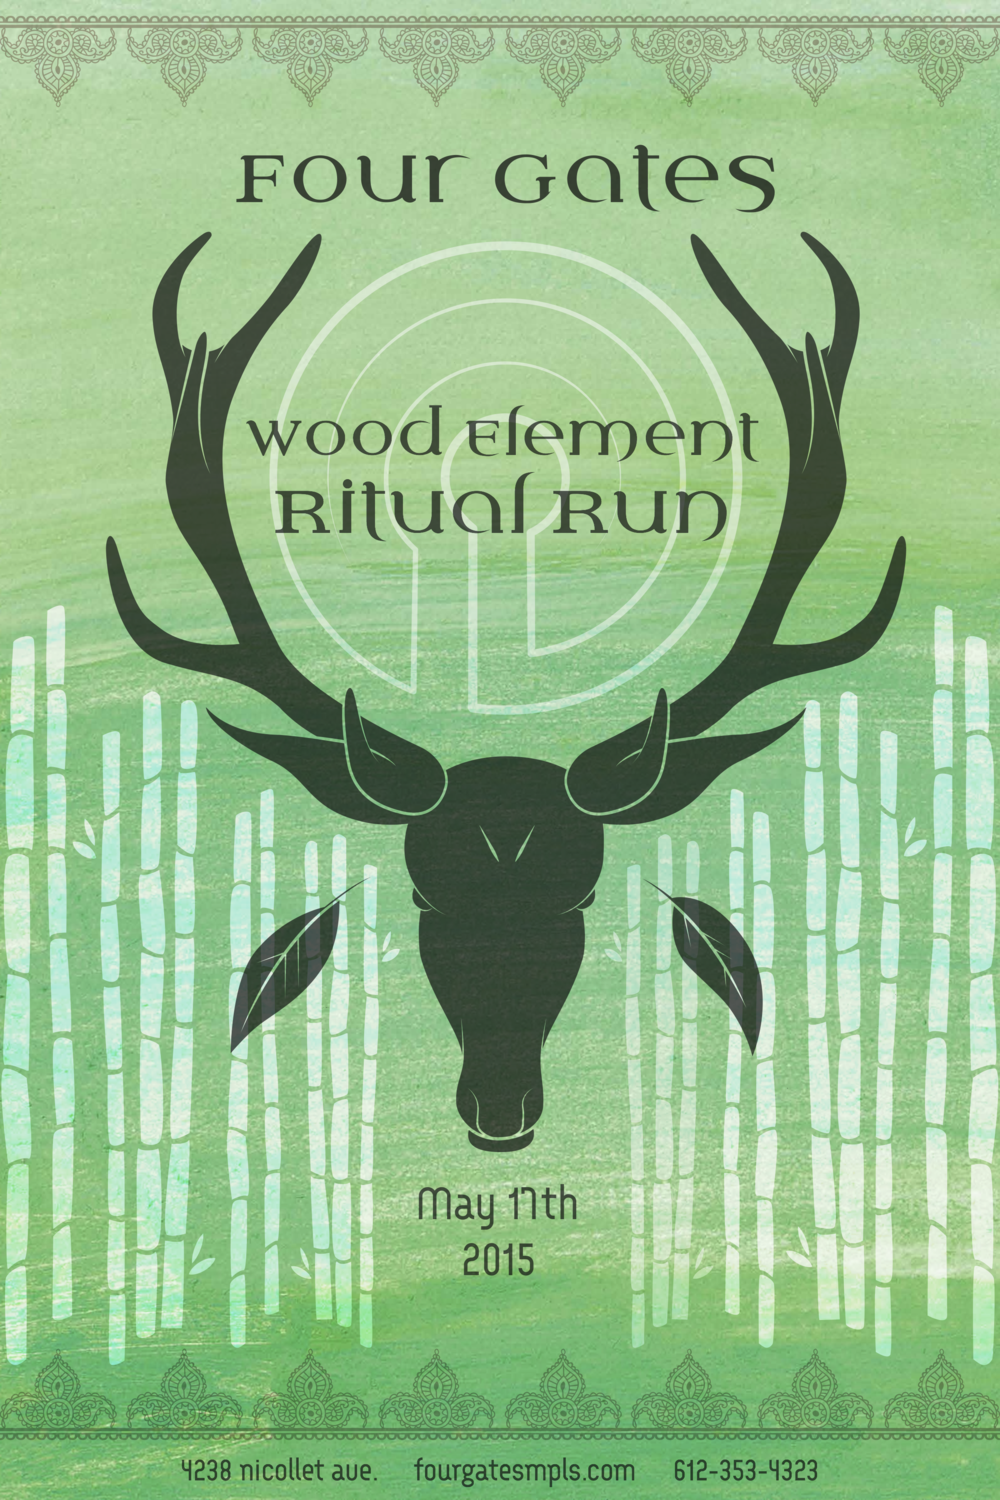 Join us for our annual Wood Element Ritual Run! Click here to read more....